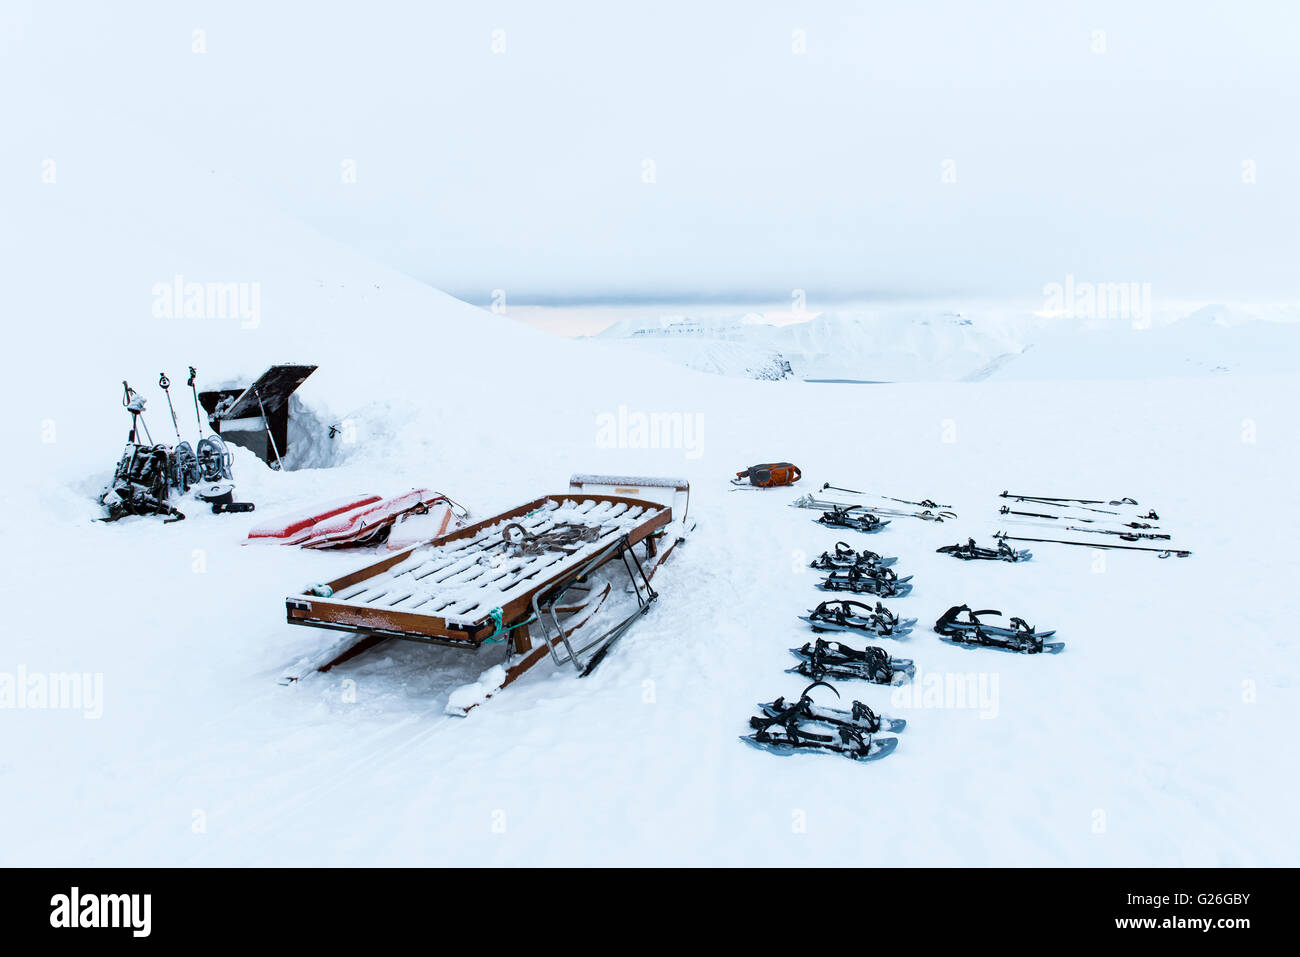 Ski equipment at the entrance of ice cave with snow-capped mountains Longyearbyen, Svalbard, Spitsbergen, Norway - Stock Image